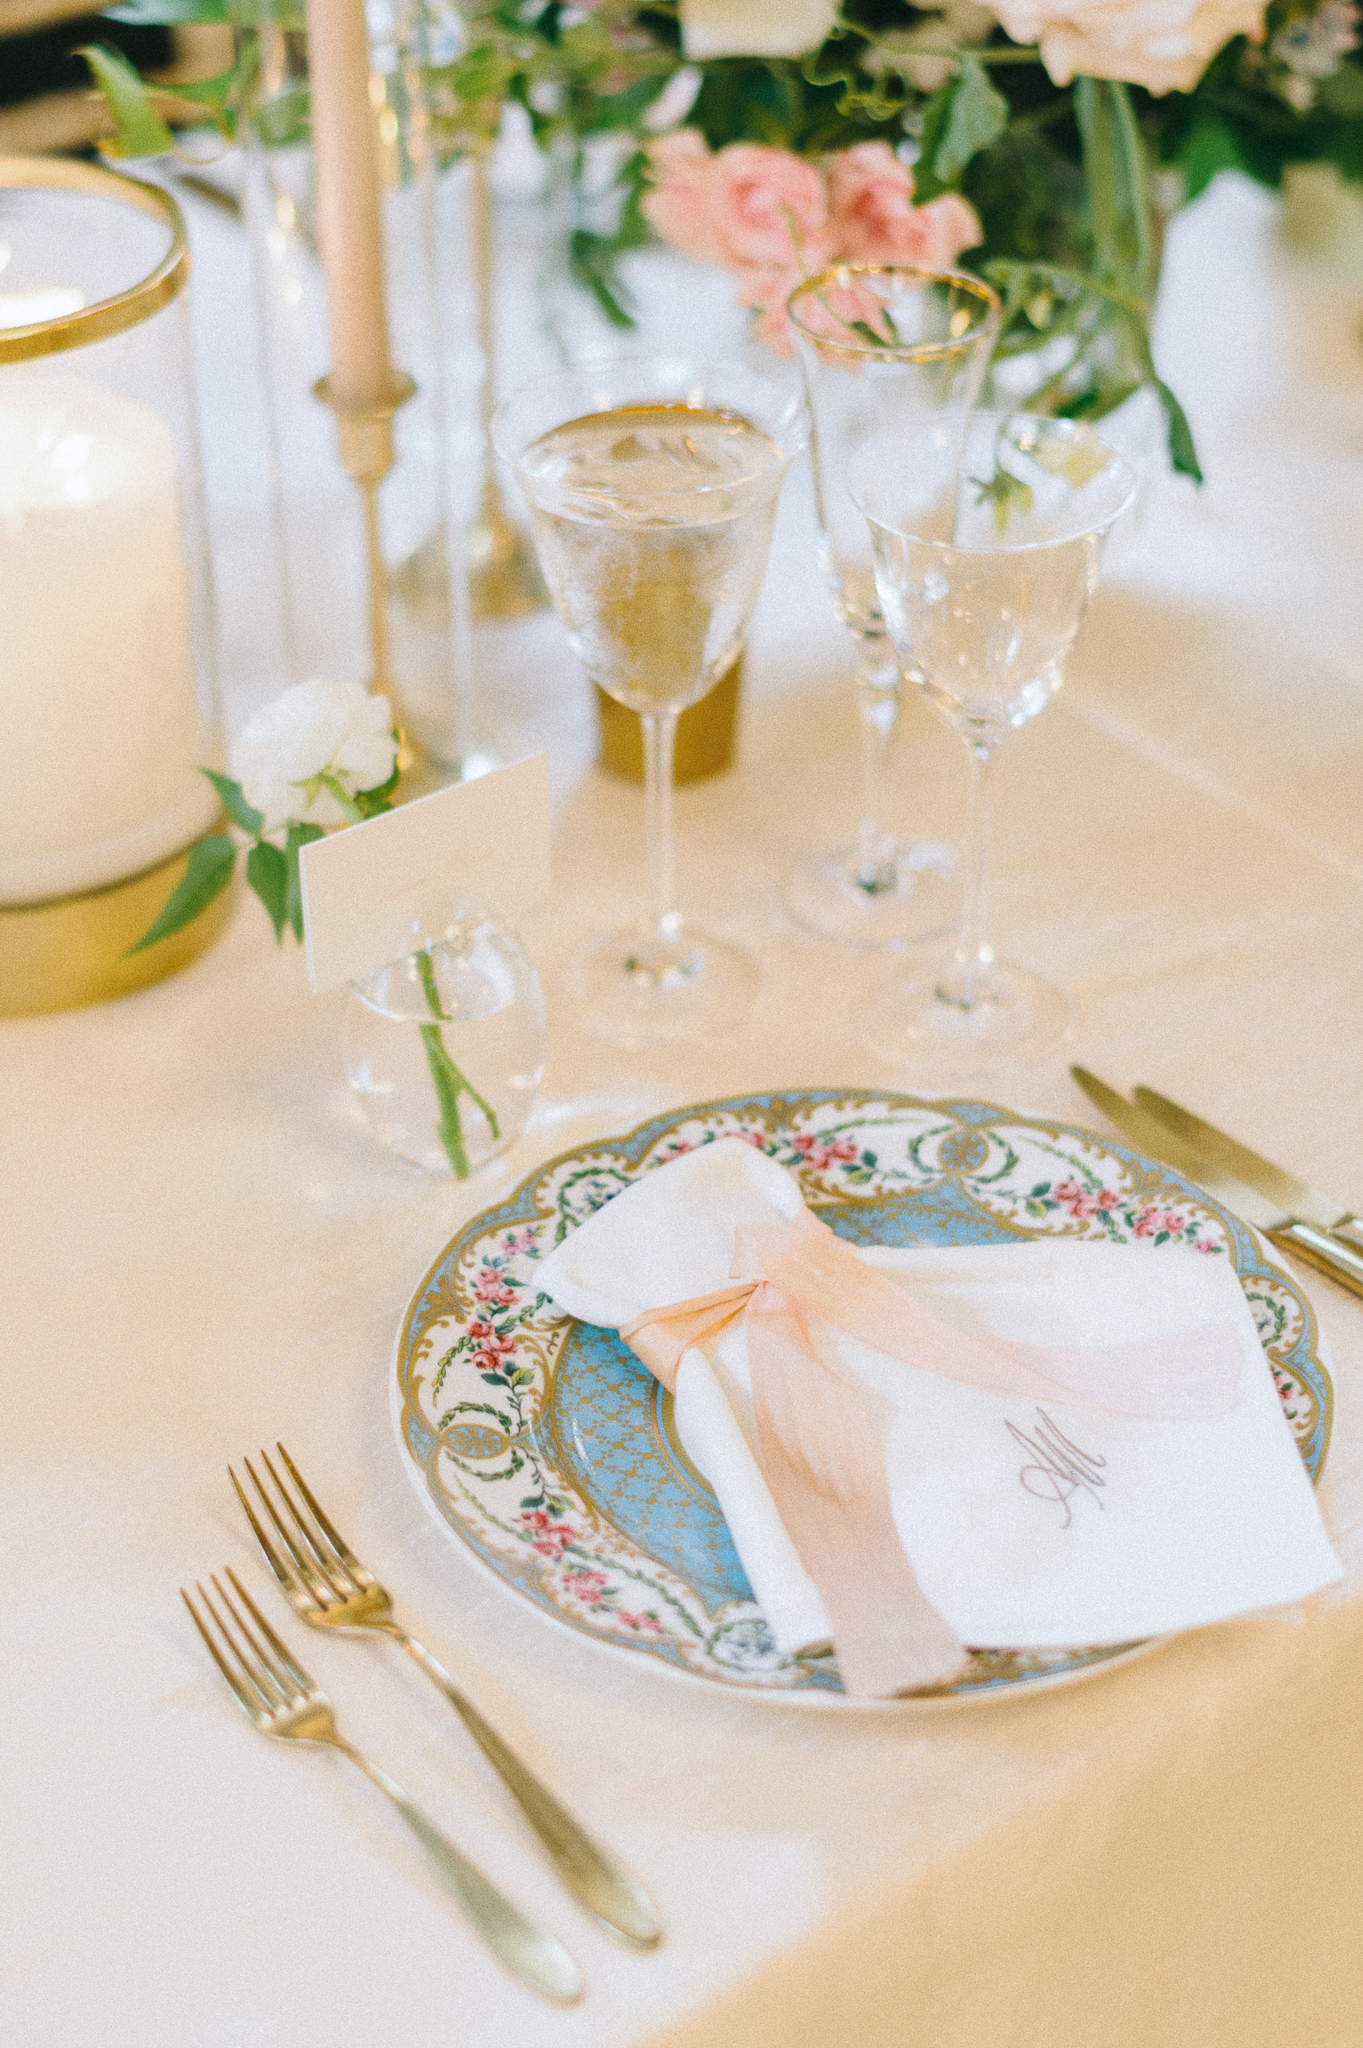 abby marcus wedding reception placesetting 172